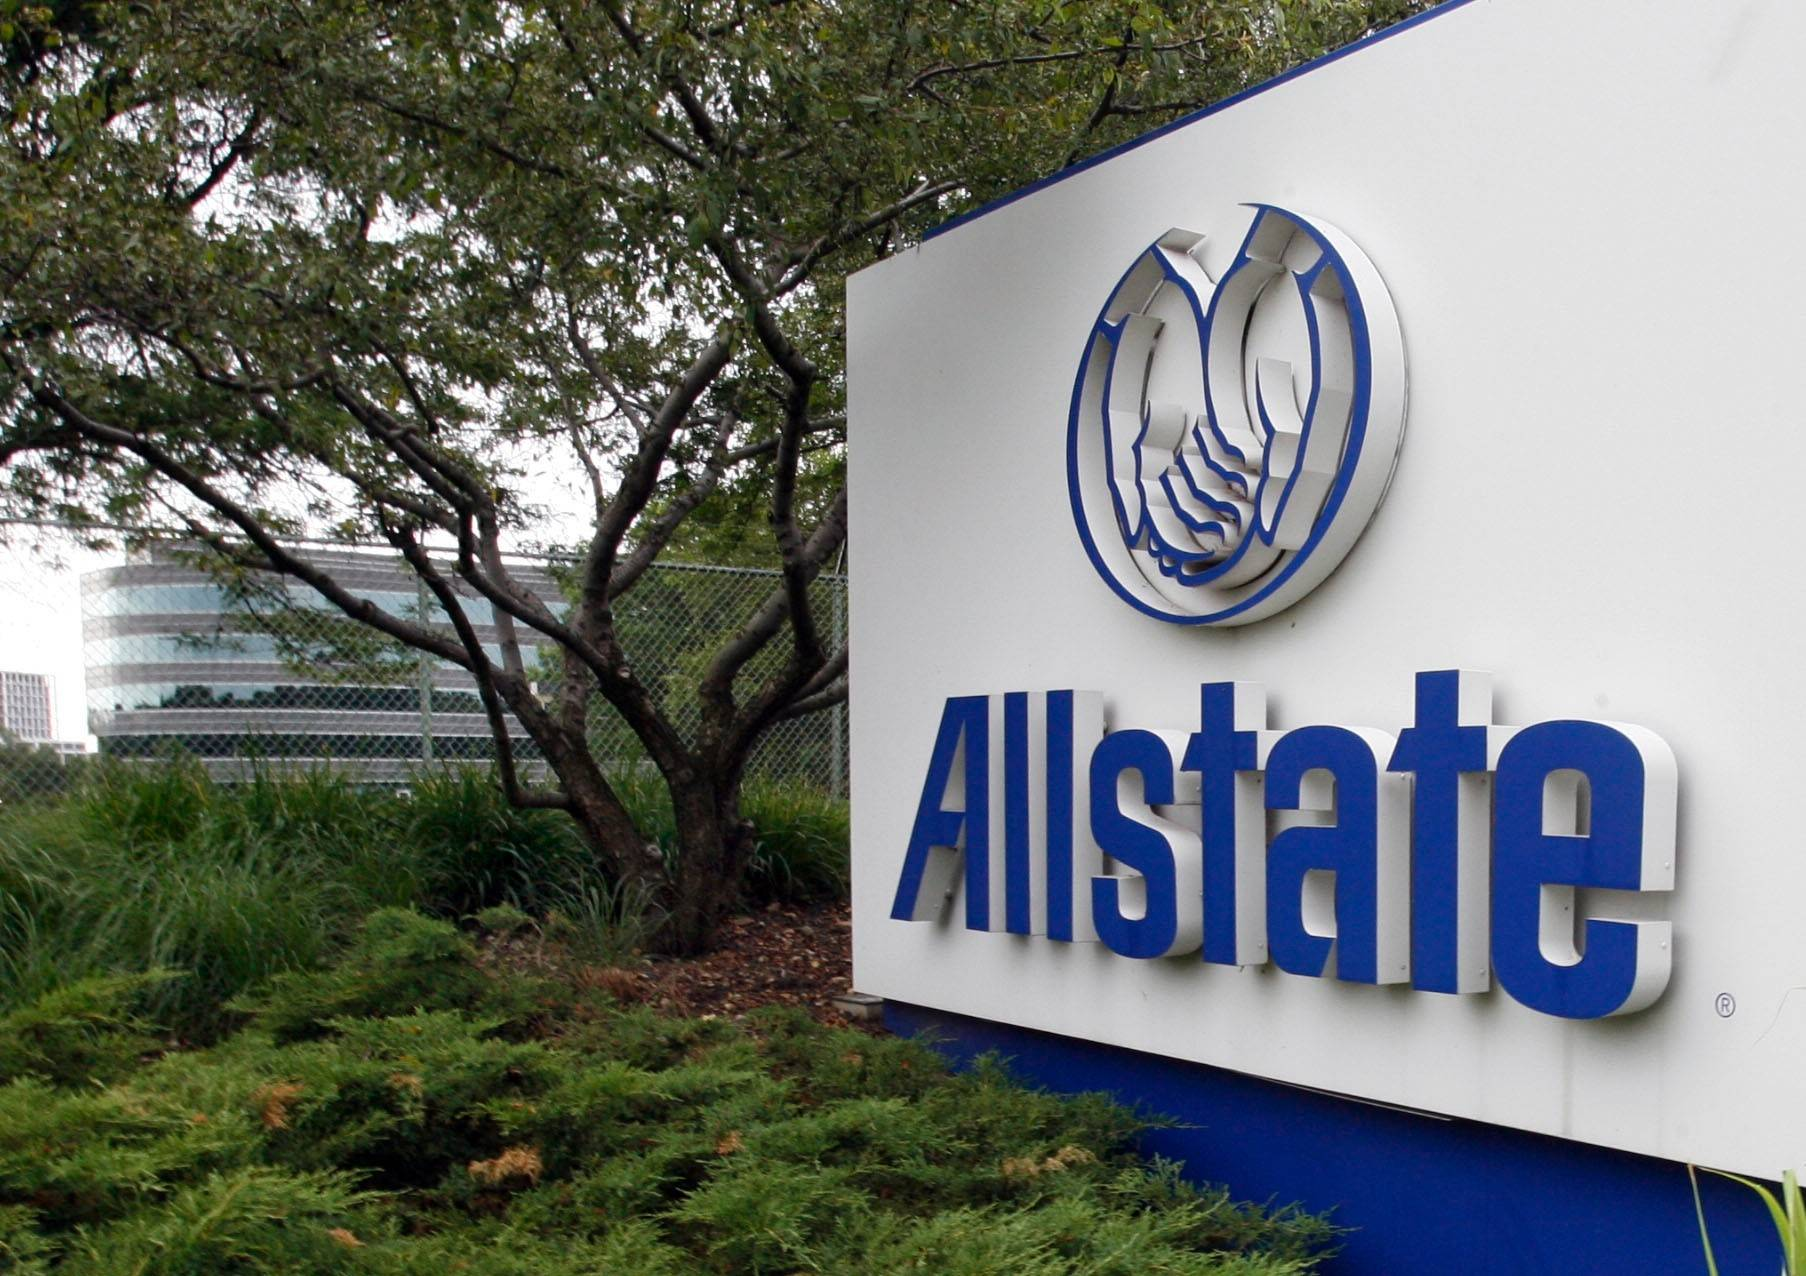 Allstate announces management shake-up, renewed focus on customers